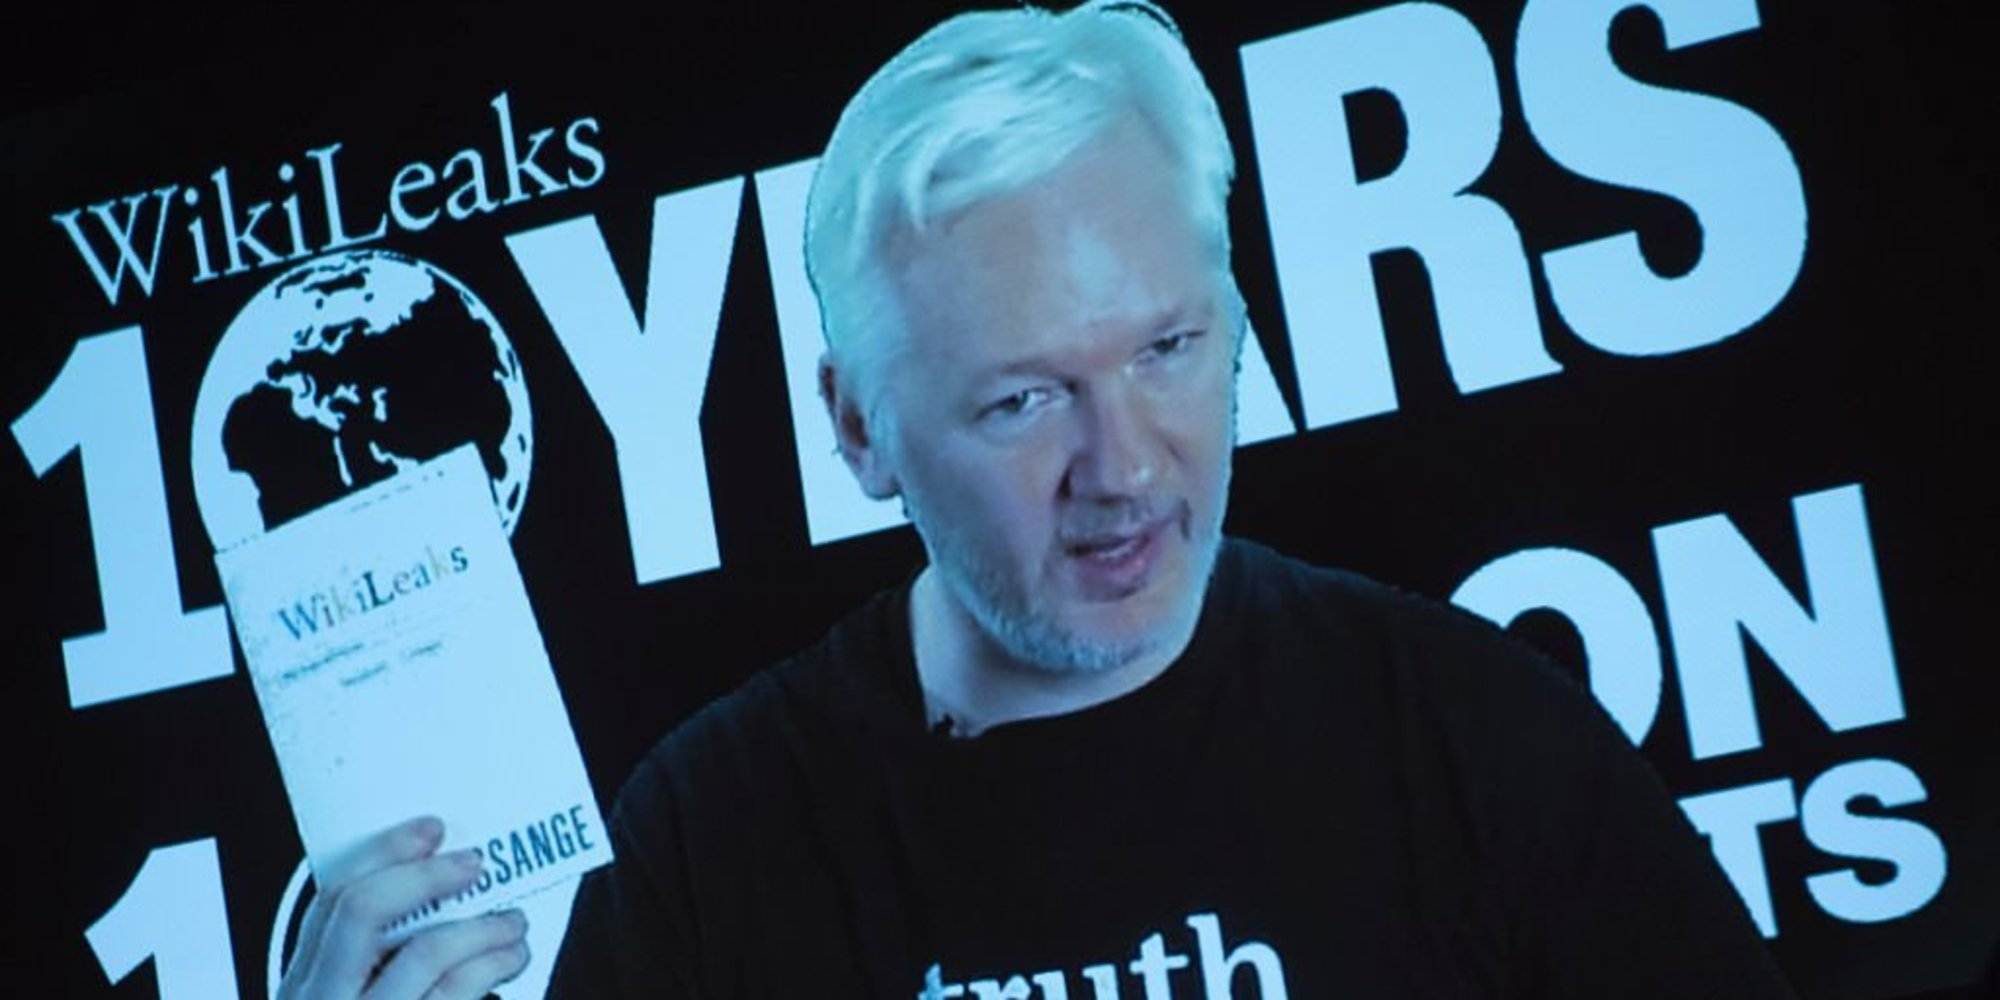 the world needs wikileaks essay Julian paul assange is an australian computer programmer and the editor of  wikileaks  171 books 172 essays 173 films  on the part of the hospital  for letting jones outside since suicide requires mental competence   cypherpunks is primarily a transcript of the world tomorrow episode eight two- part interview.